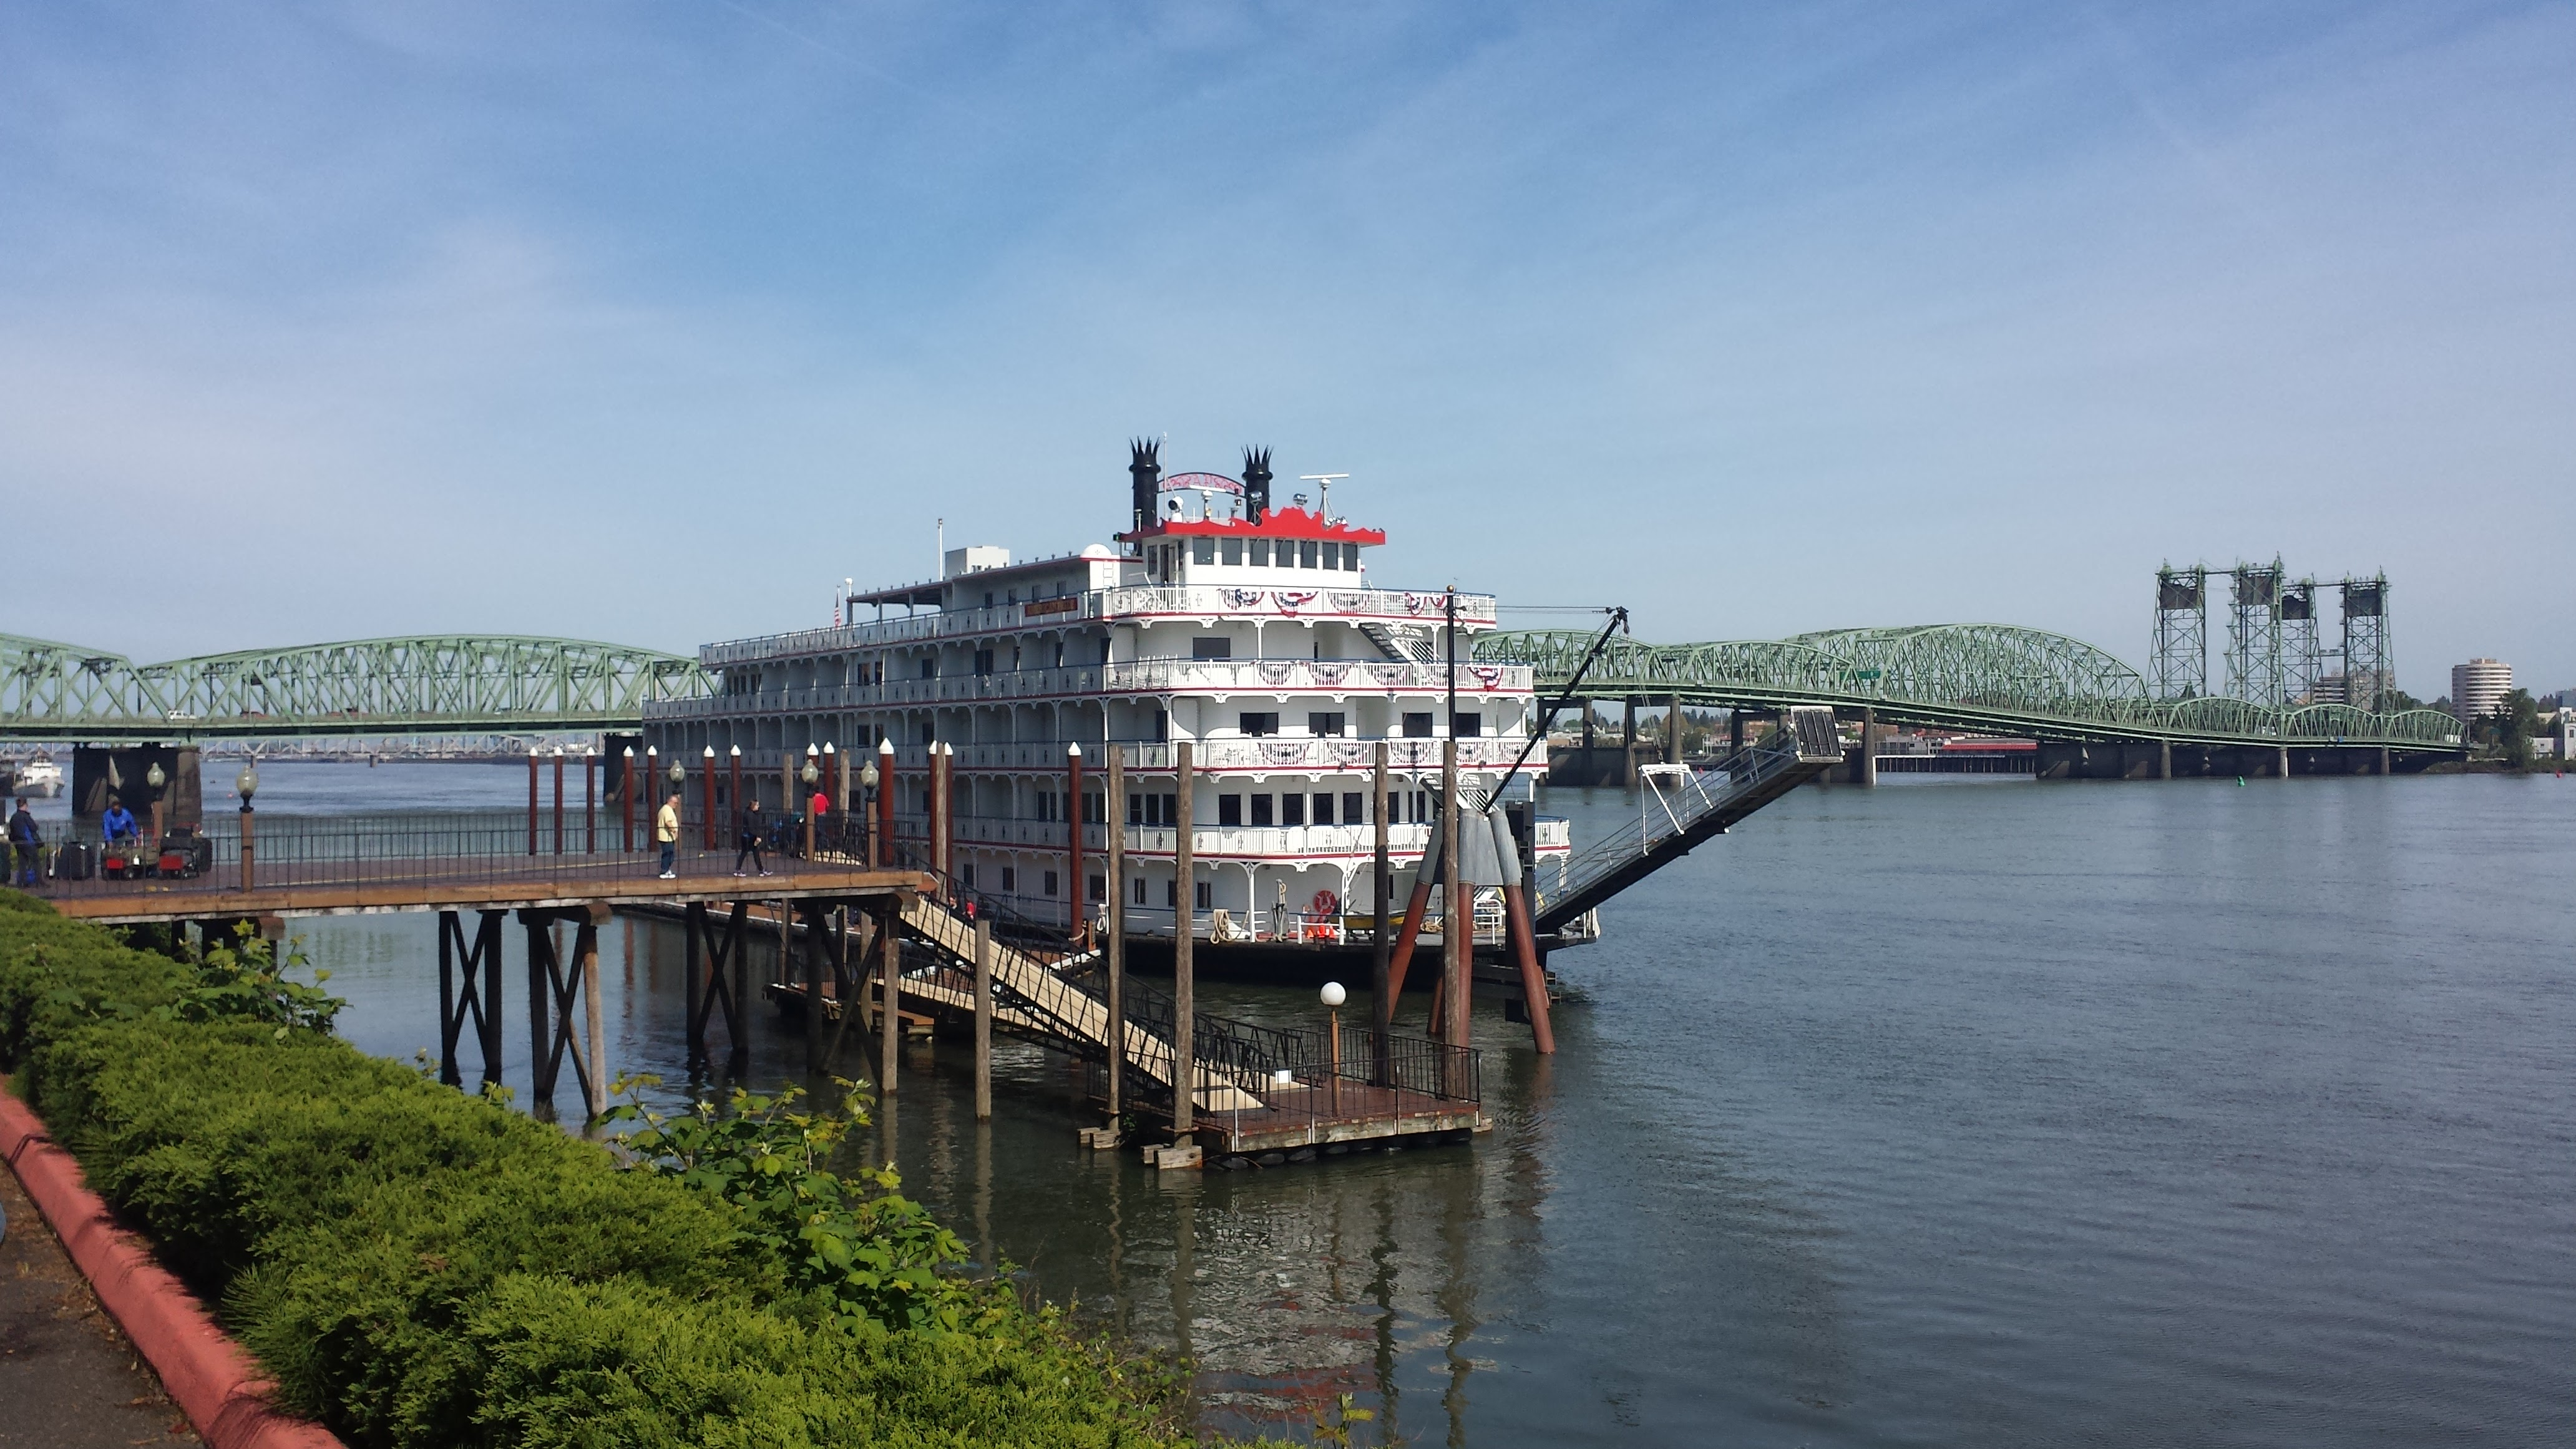 American Pride docked in Portland. Photo by Ashley Whitham.